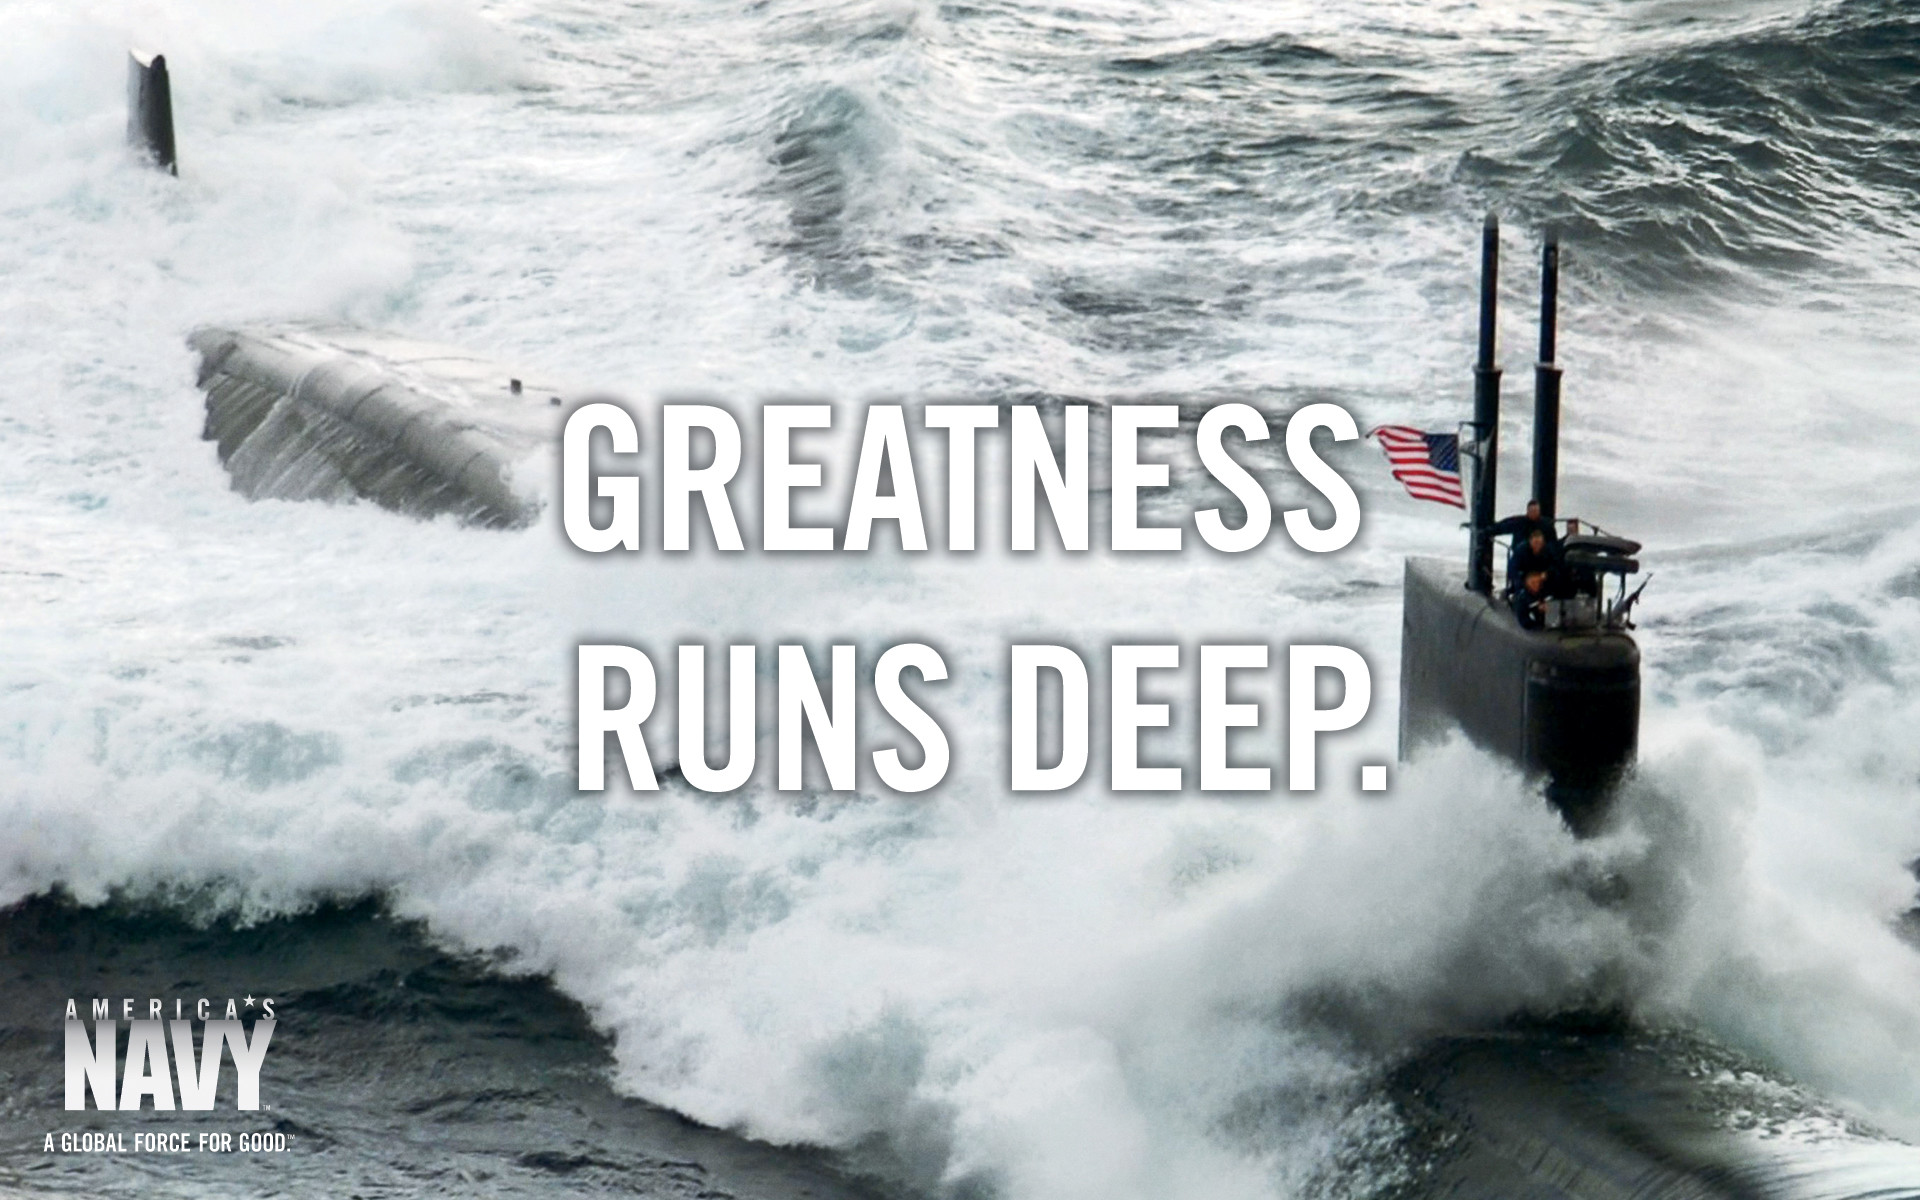 1920x1200 Military boats - United States Navy - Greatness Runs Deep Wallpapers .